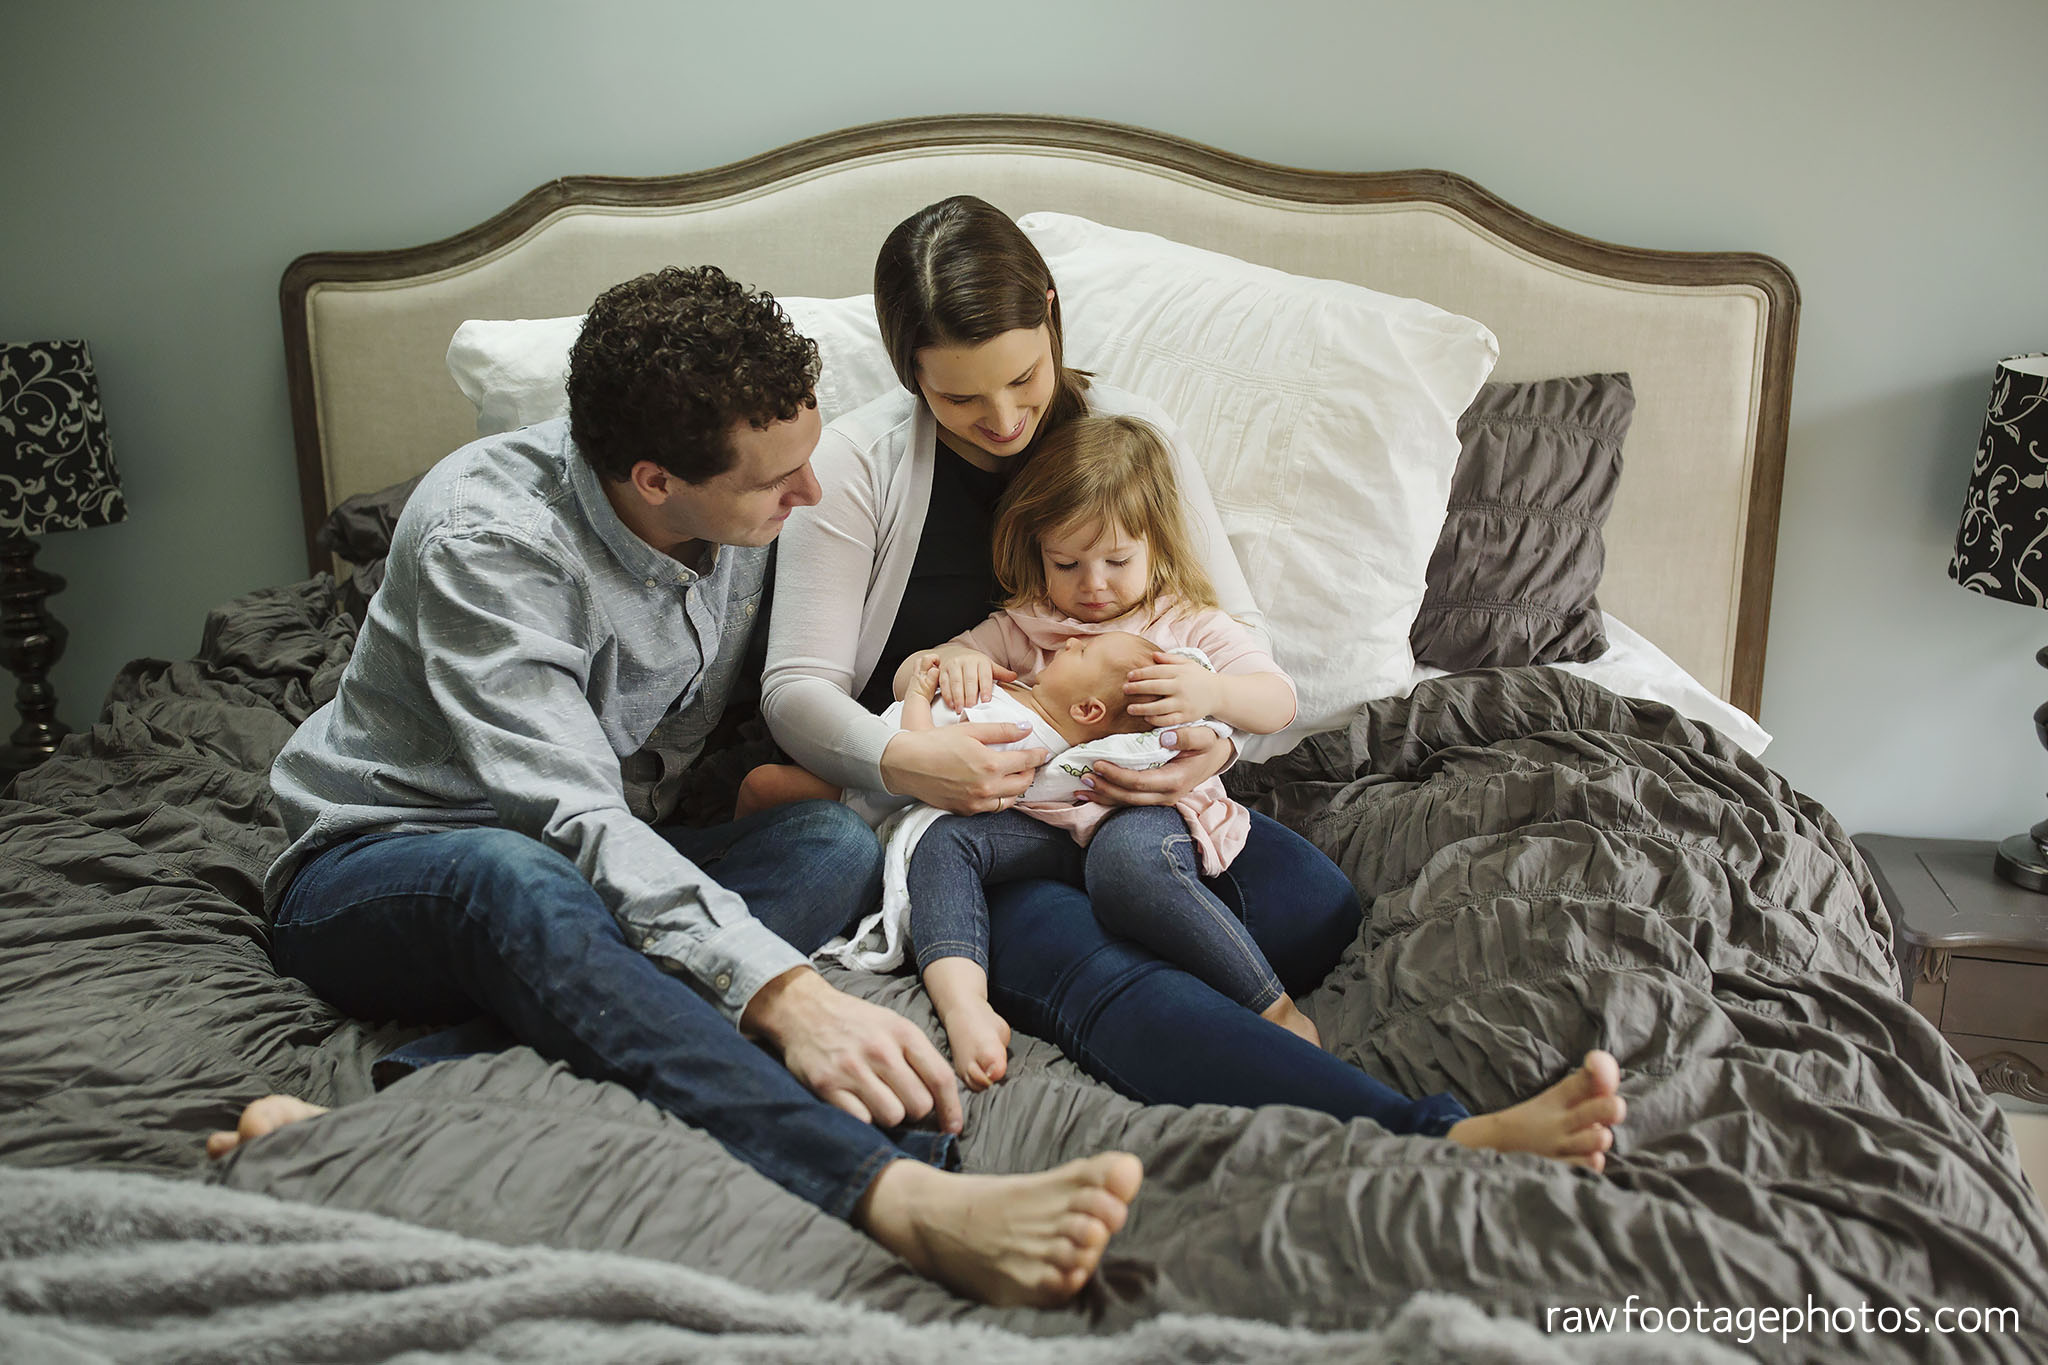 london_ontario_newborn_photographer-lifestyle_newborn_photography-in_home_newborn_session-raw_footage_photography001.jpg